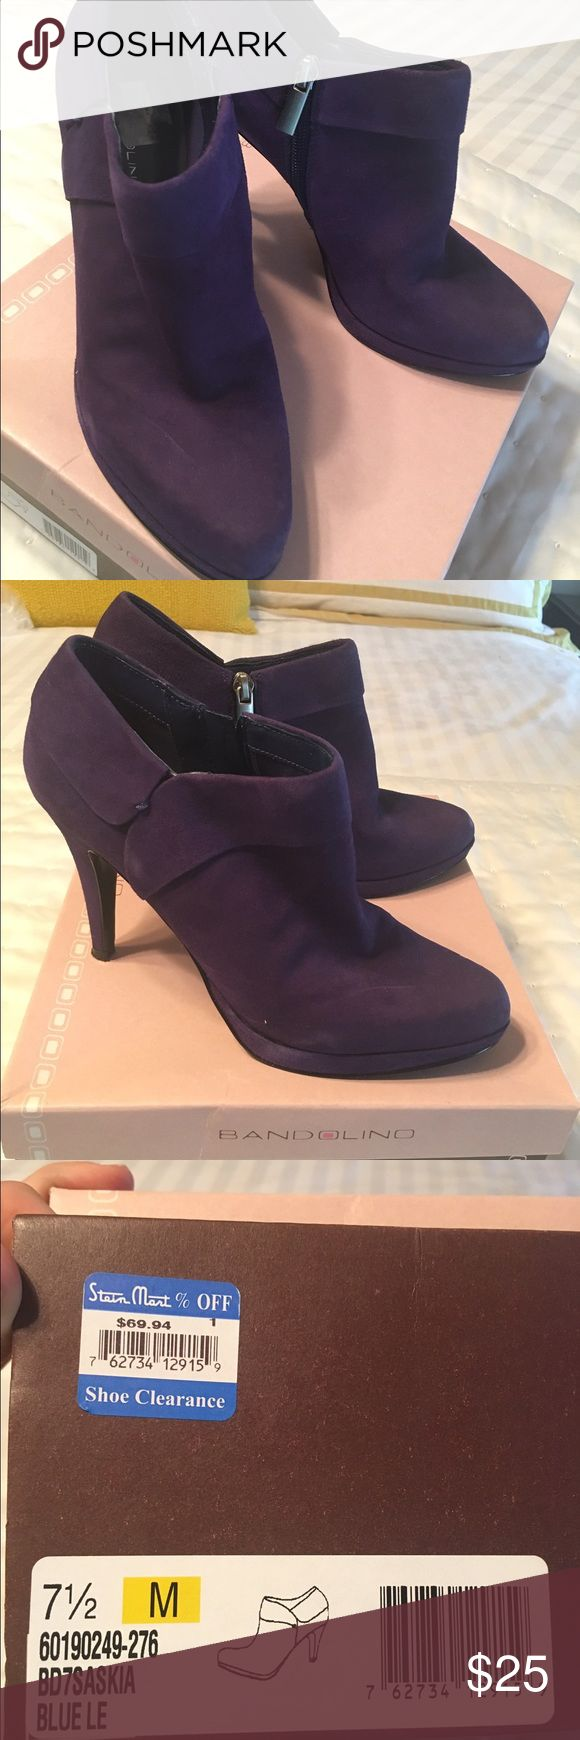 Purple ankle booties Purple suede booties! YES! Great for anything...never worn. Bandolino Shoes Ankle Boots & Booties